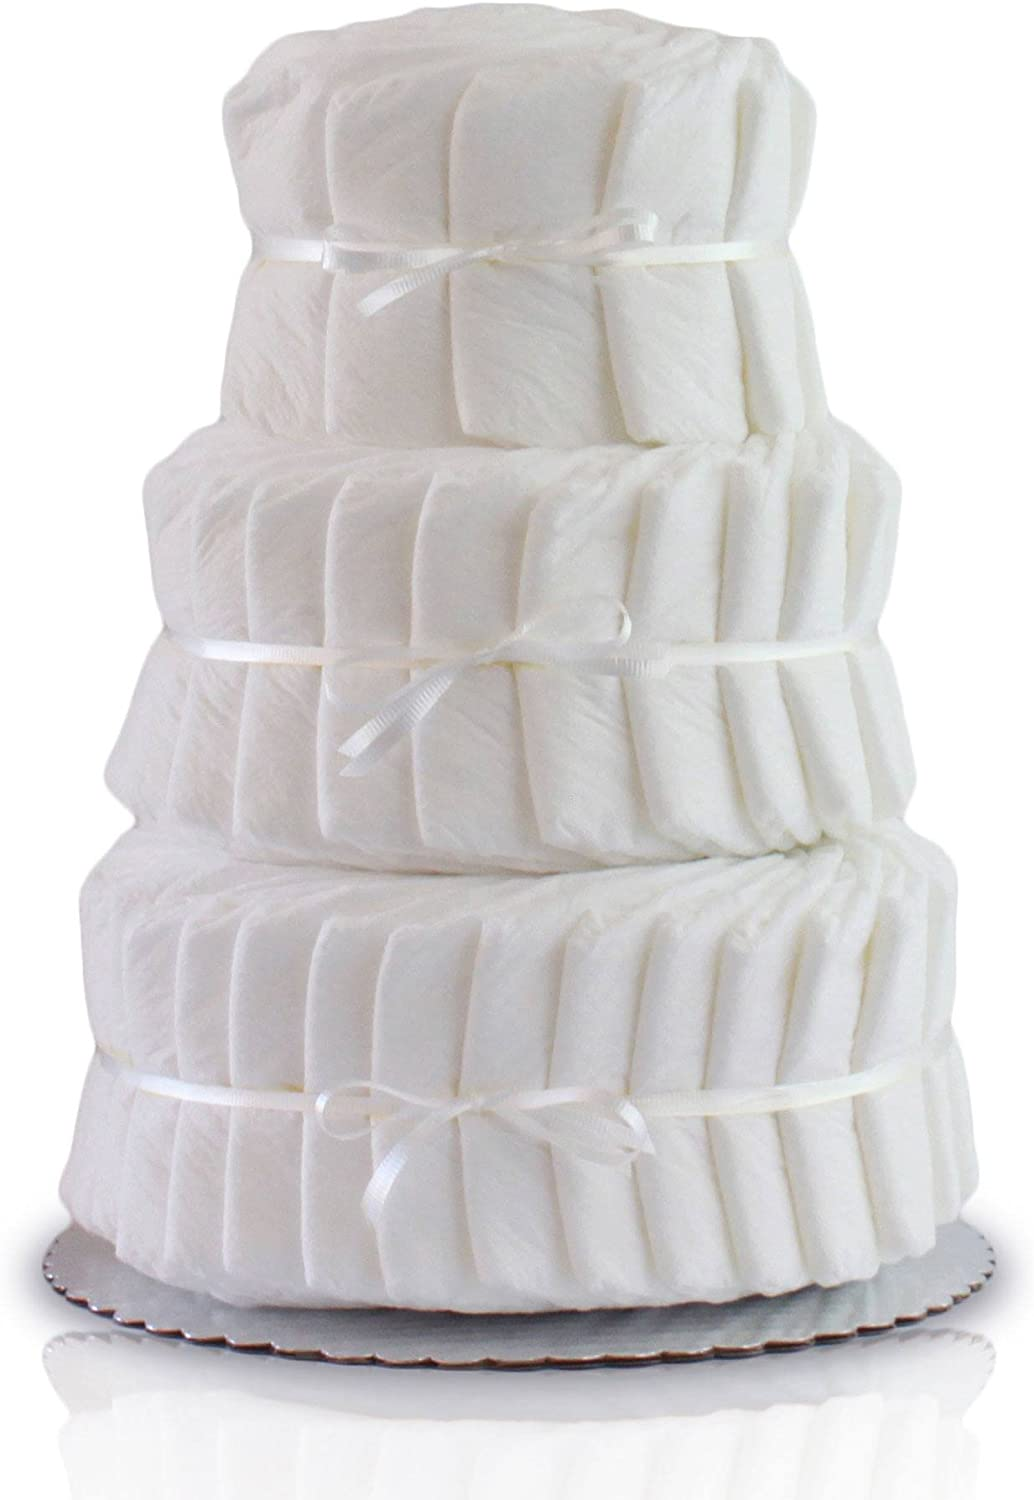 Decorate It Yourself 3 Tier Plain Diaper Cake-60 Diapers